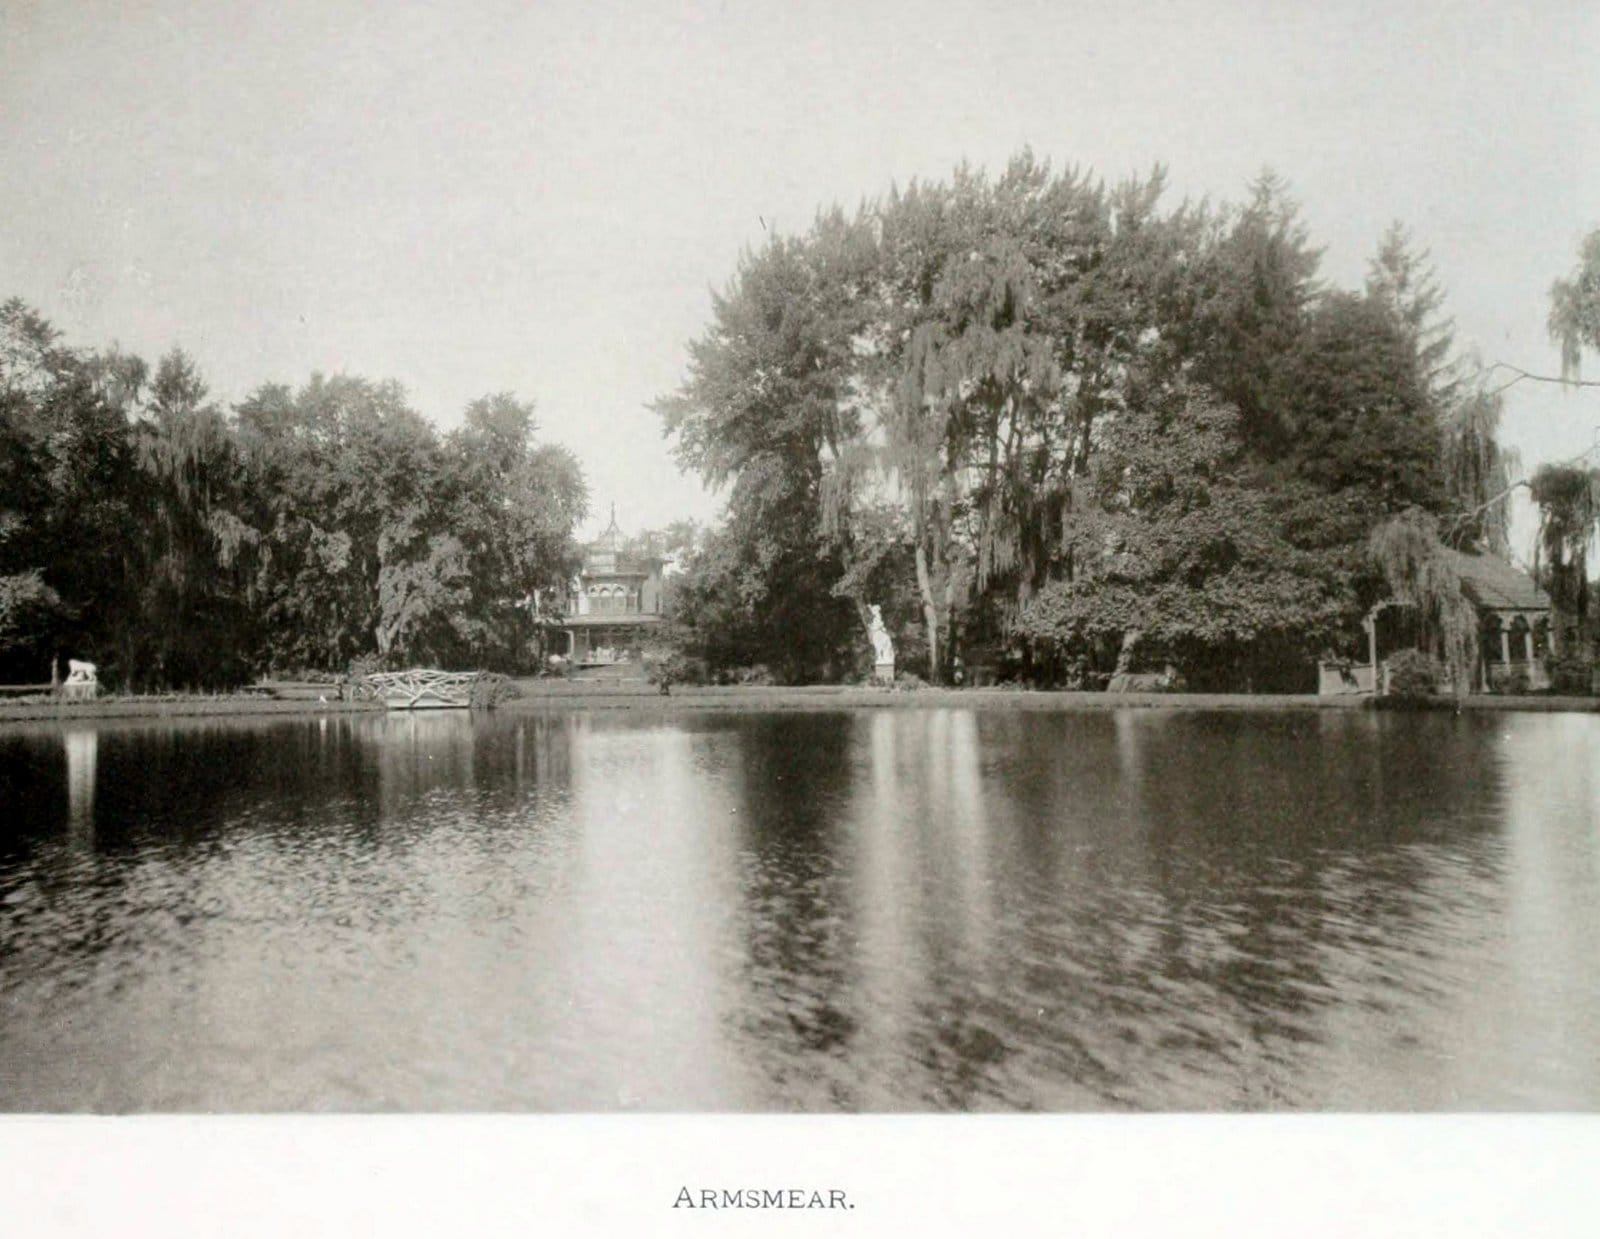 Armsmear mansion as seen across the garden and lake